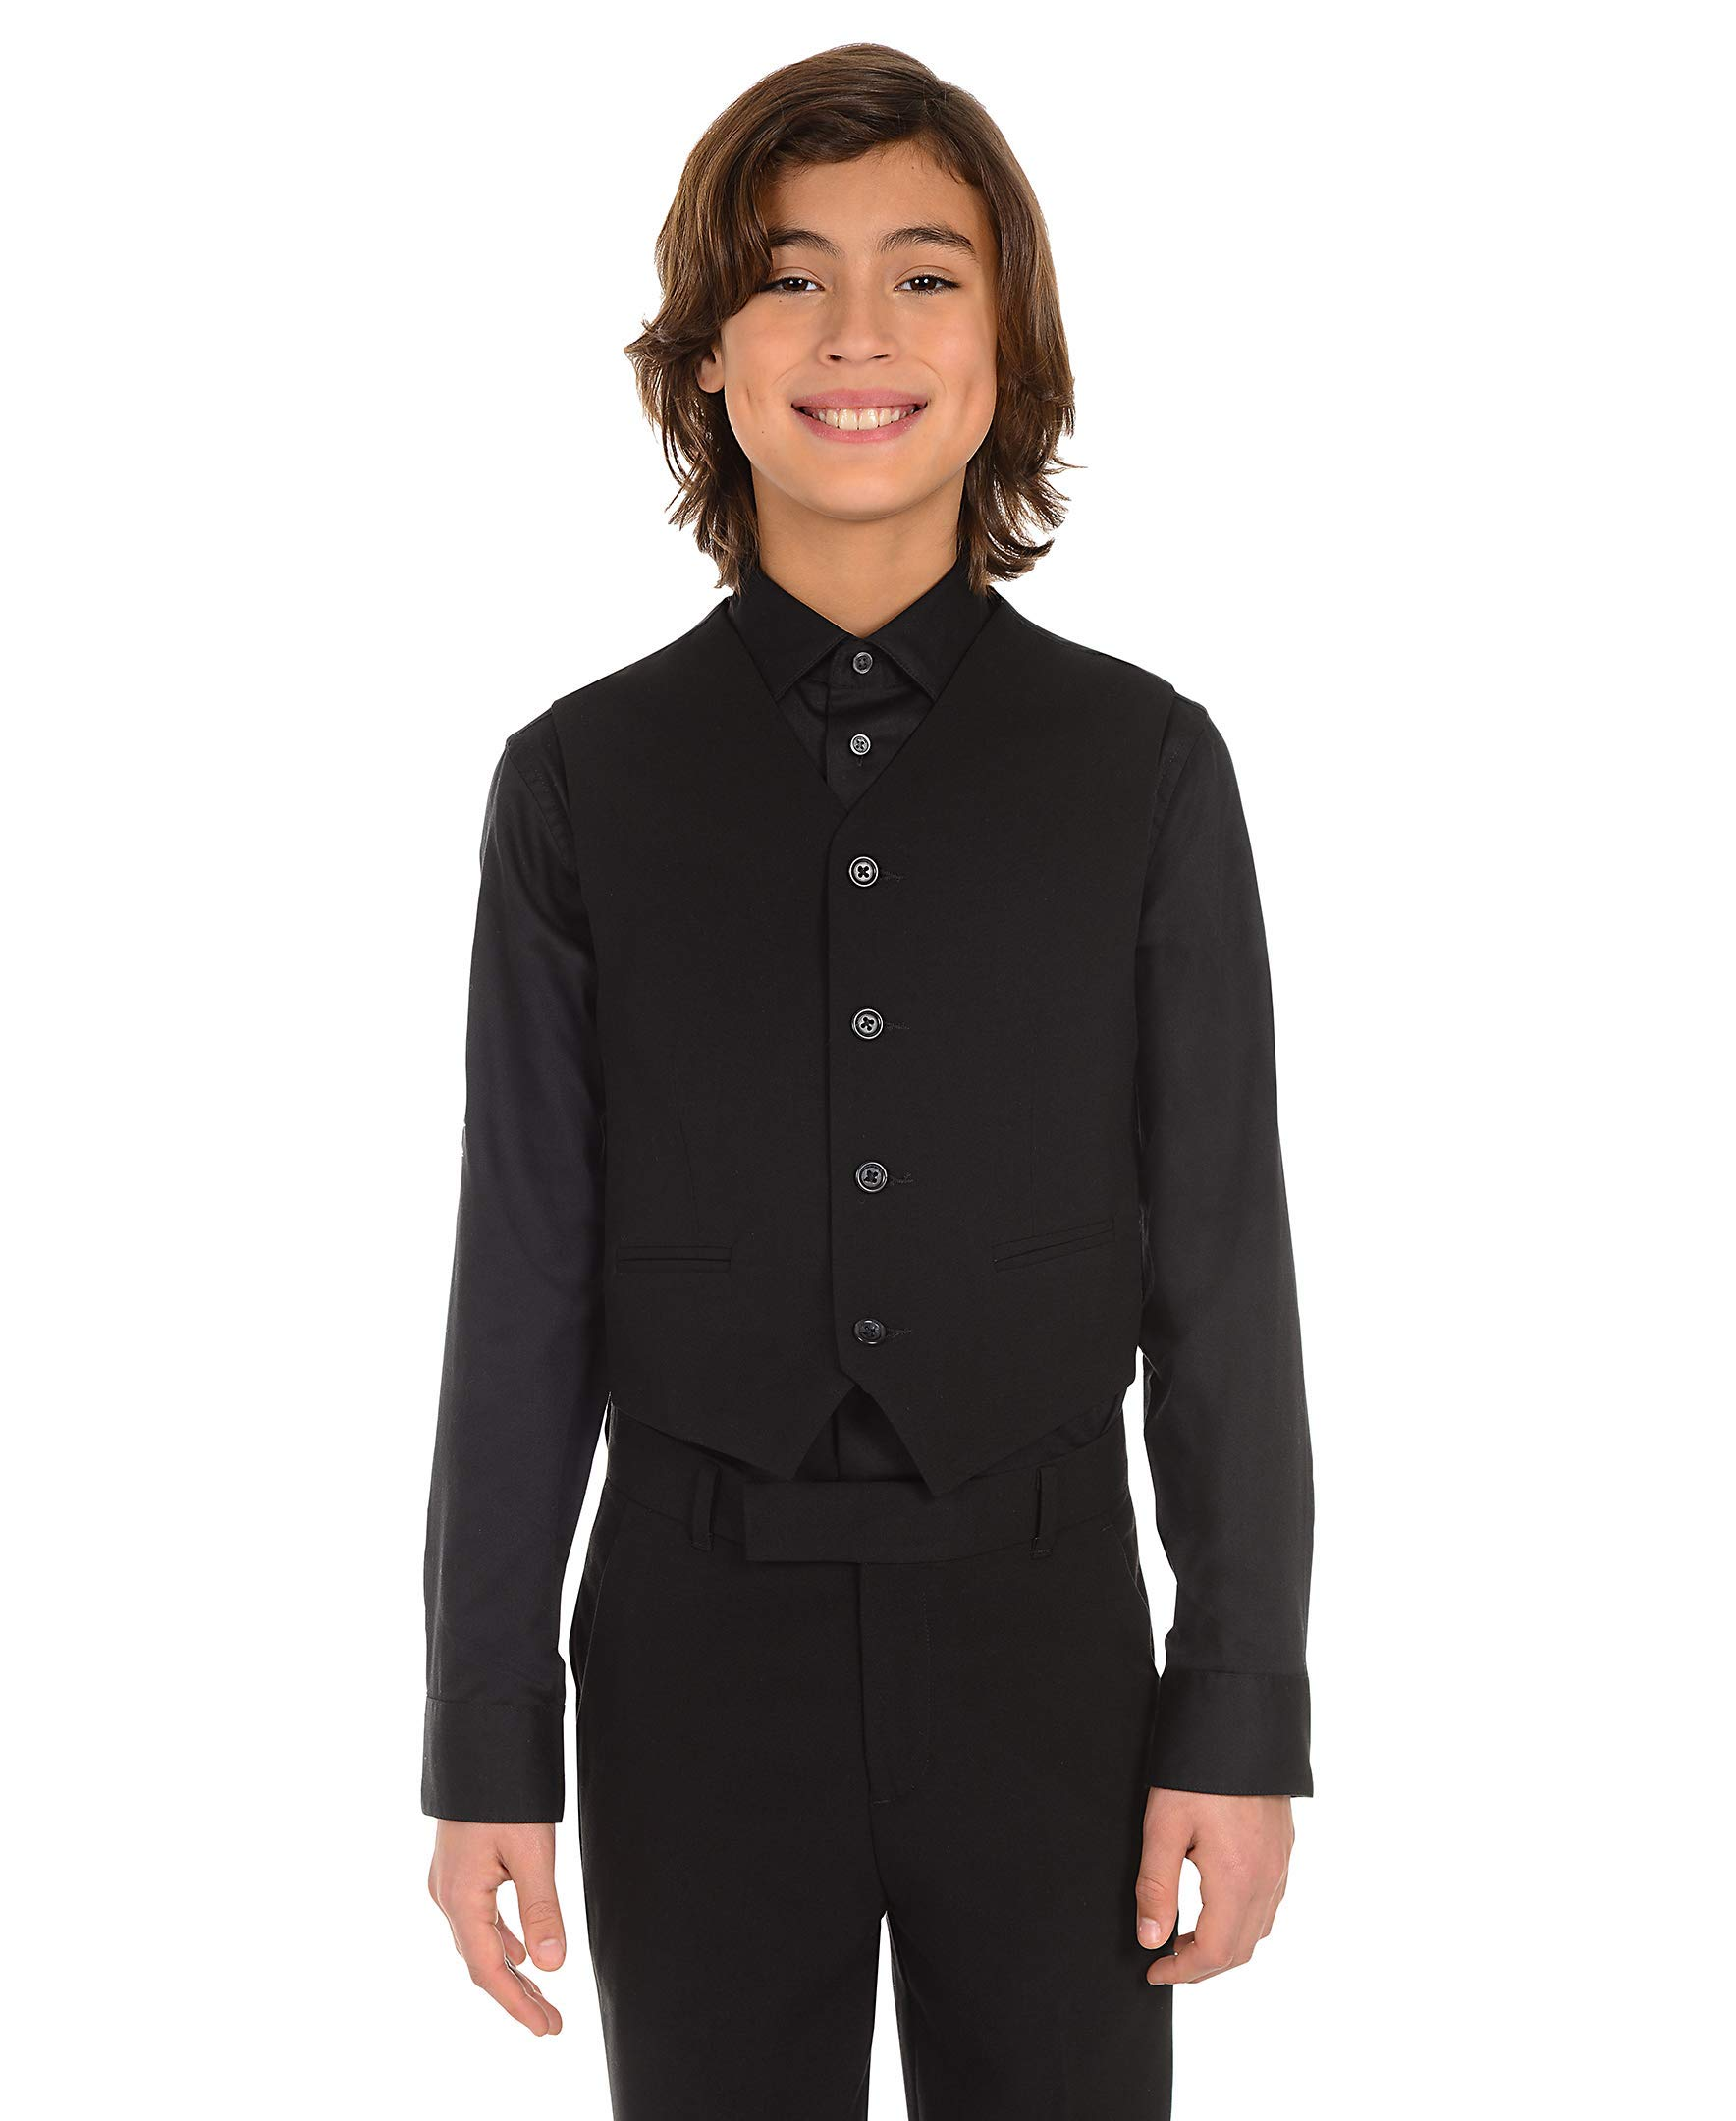 Calvin Klein Dress Up Big Boys' Bi-Stretch Vest, Black, Small by Calvin Klein (Image #4)